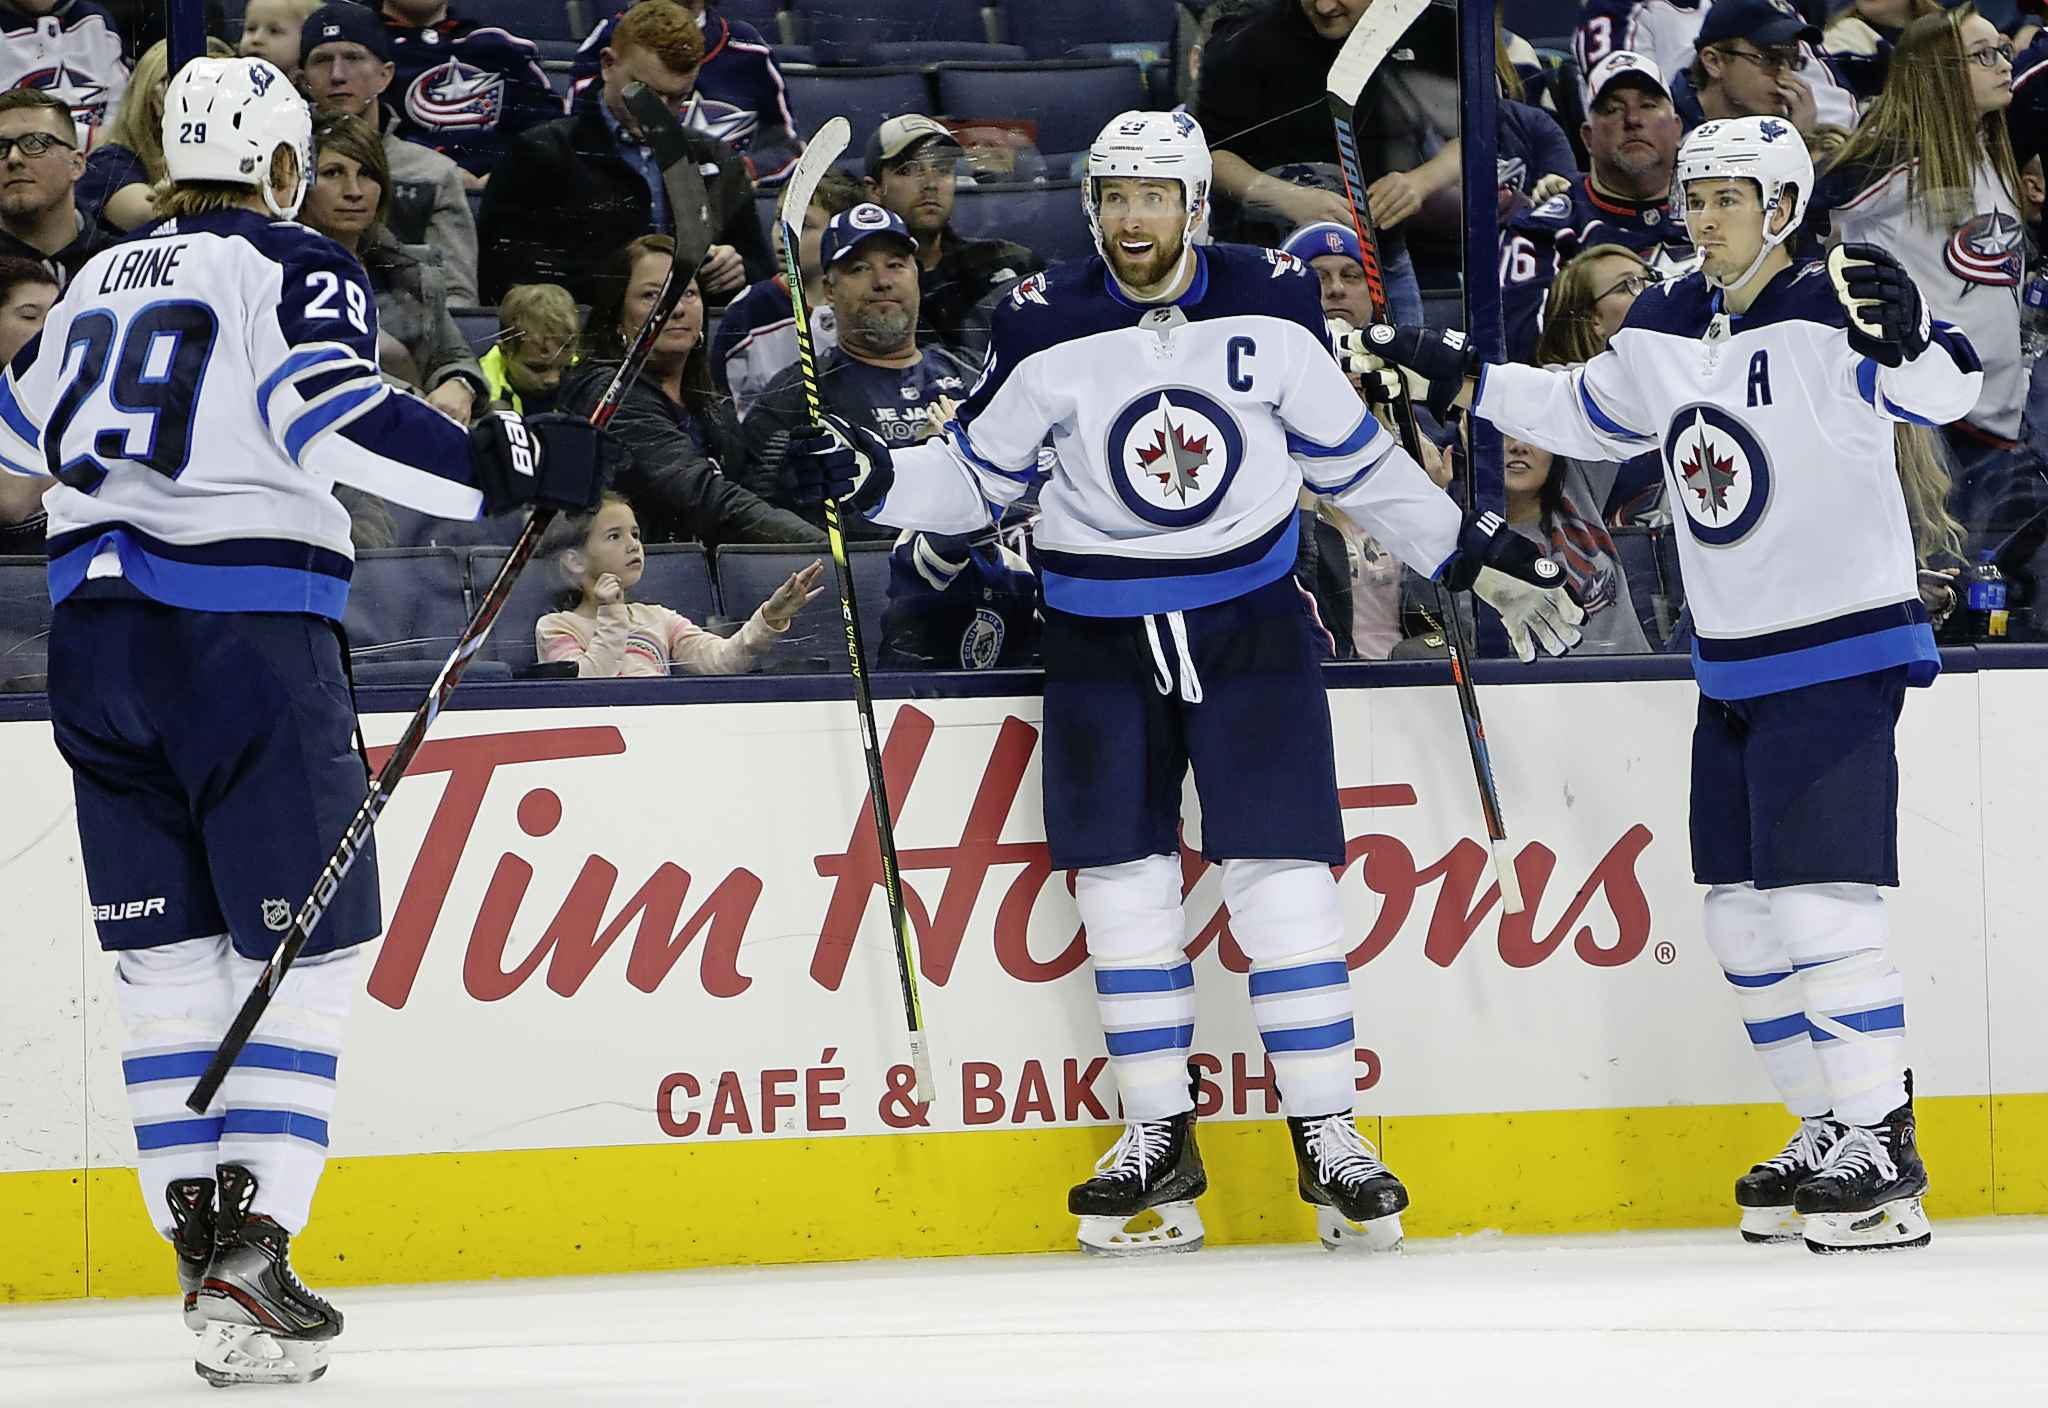 JAY LAPRETE / THE ASSOCIATED PRESS</p><p>Winnipeg Jets&#39; Blake Wheeler, center, celebrates his goal against the Columbus Blue Jackets with teammates Patrik Laine, left, of Finland, and Mark Scheifele during the third period of an NHL hockey game Sunday, March 3, 2019, in Columbus, Ohio. The Jets beat the Blue Jackets 5-2.</p>